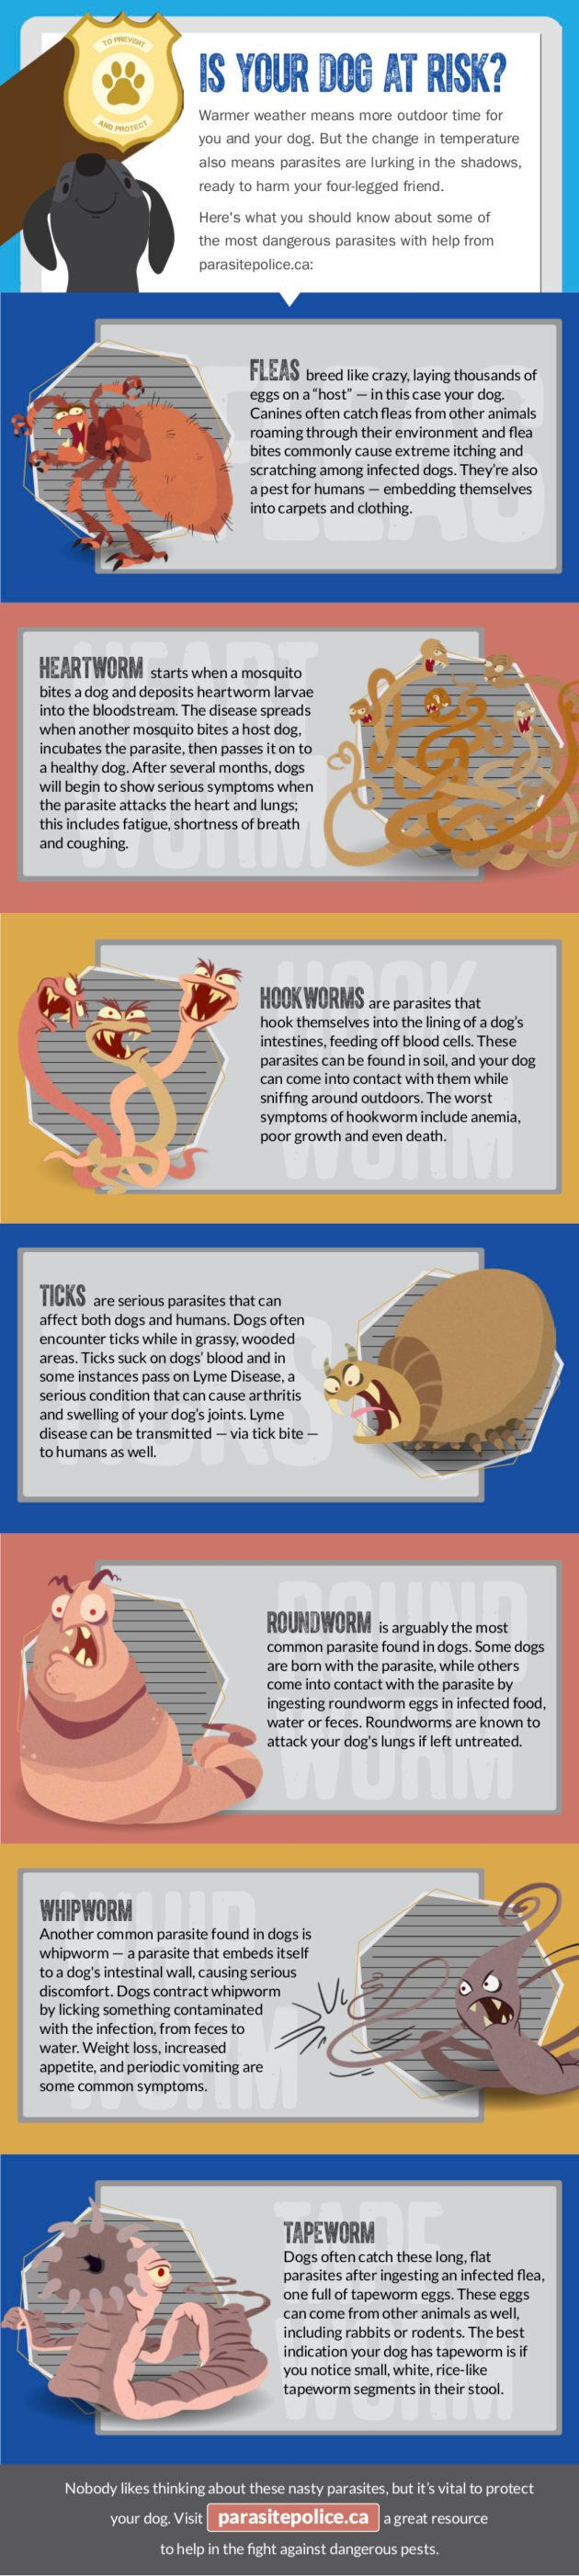 Information provided by parasitepolice.ca.